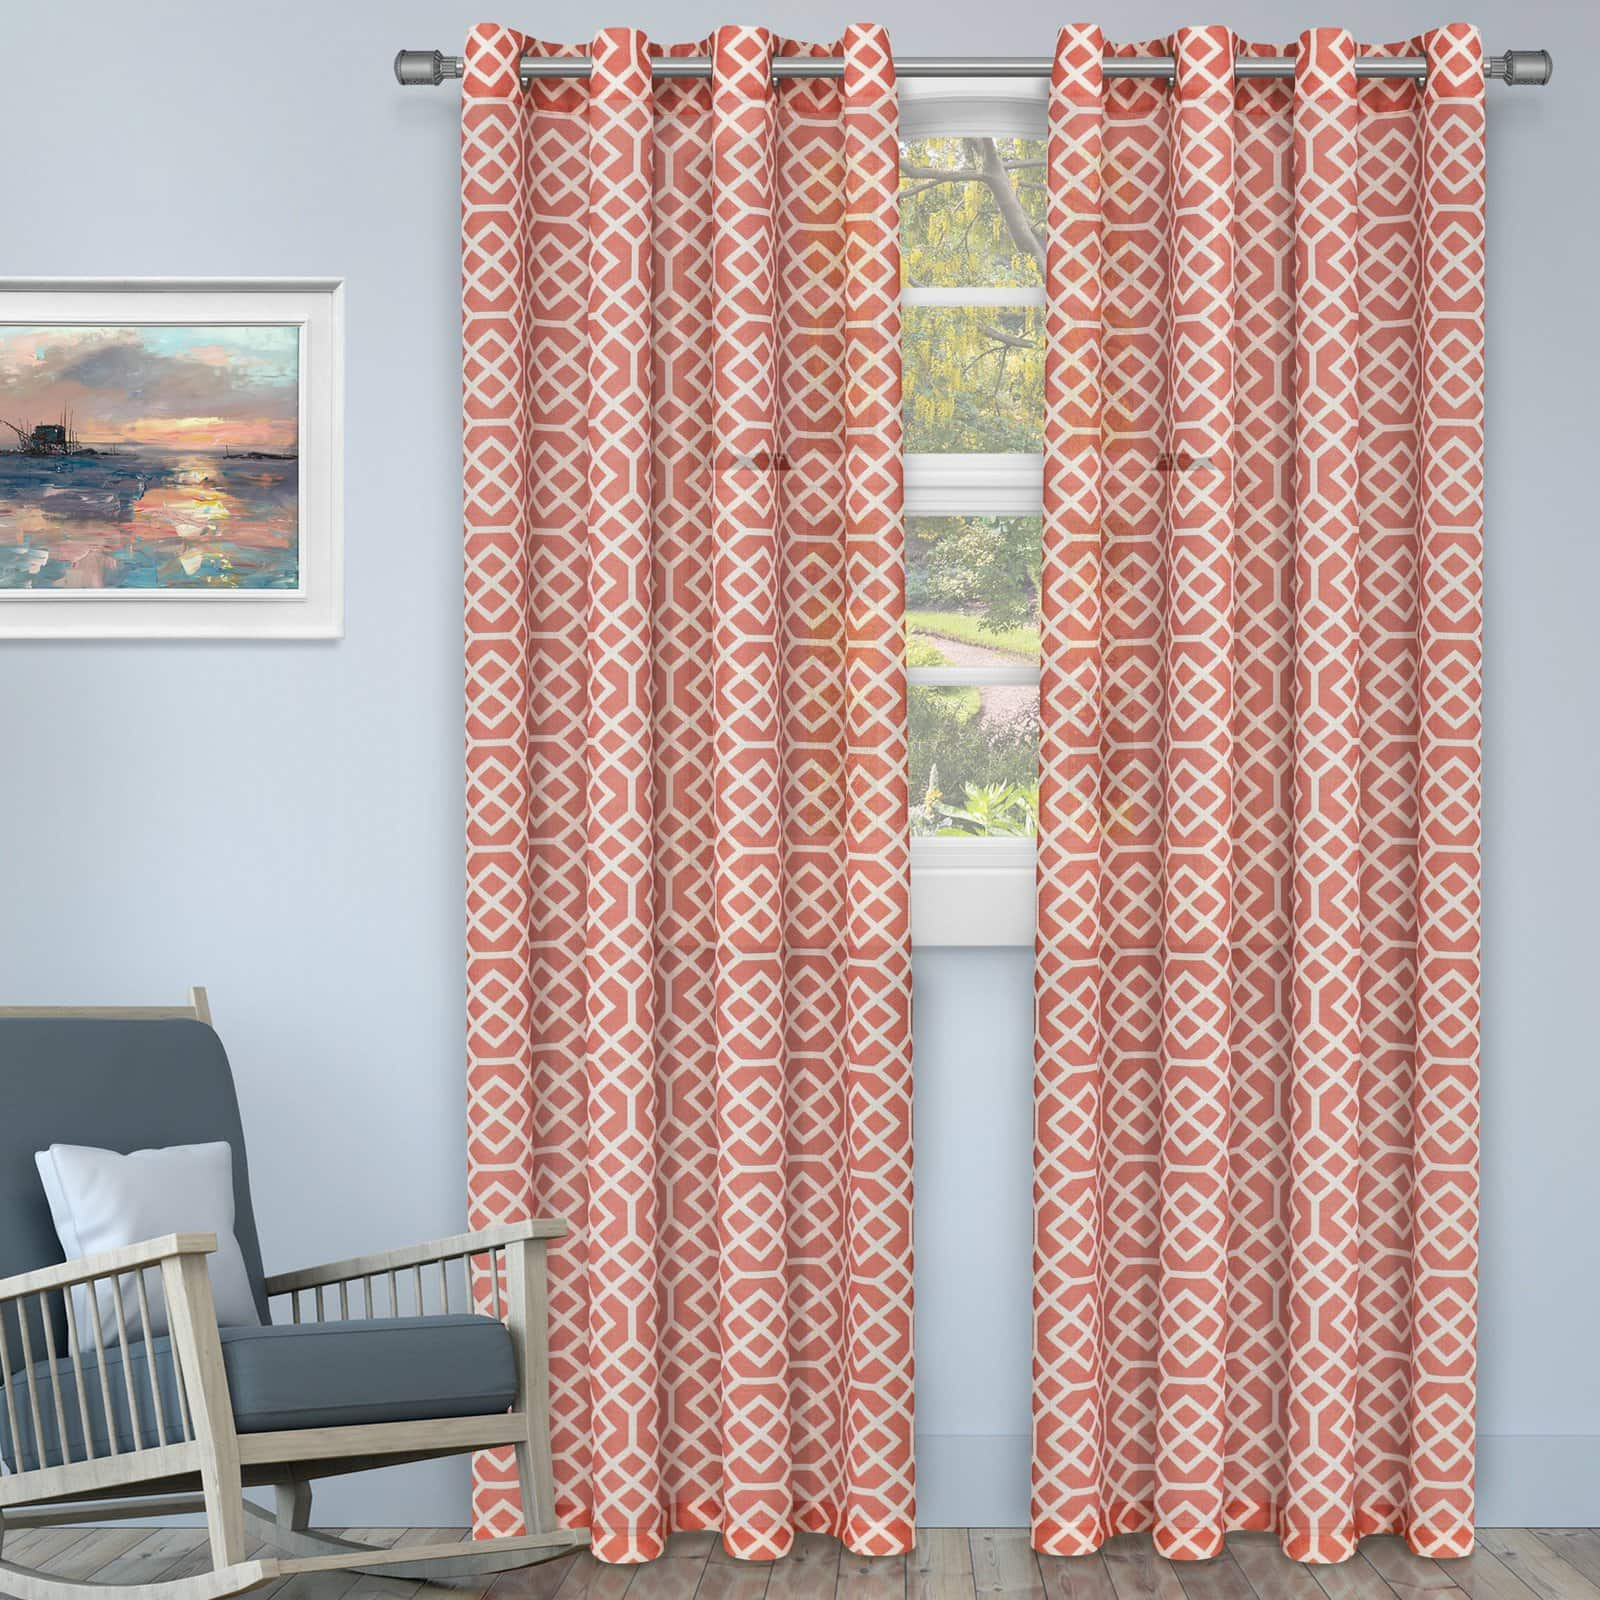 Rusty Red Curtains With Light Blue-Grey Walls